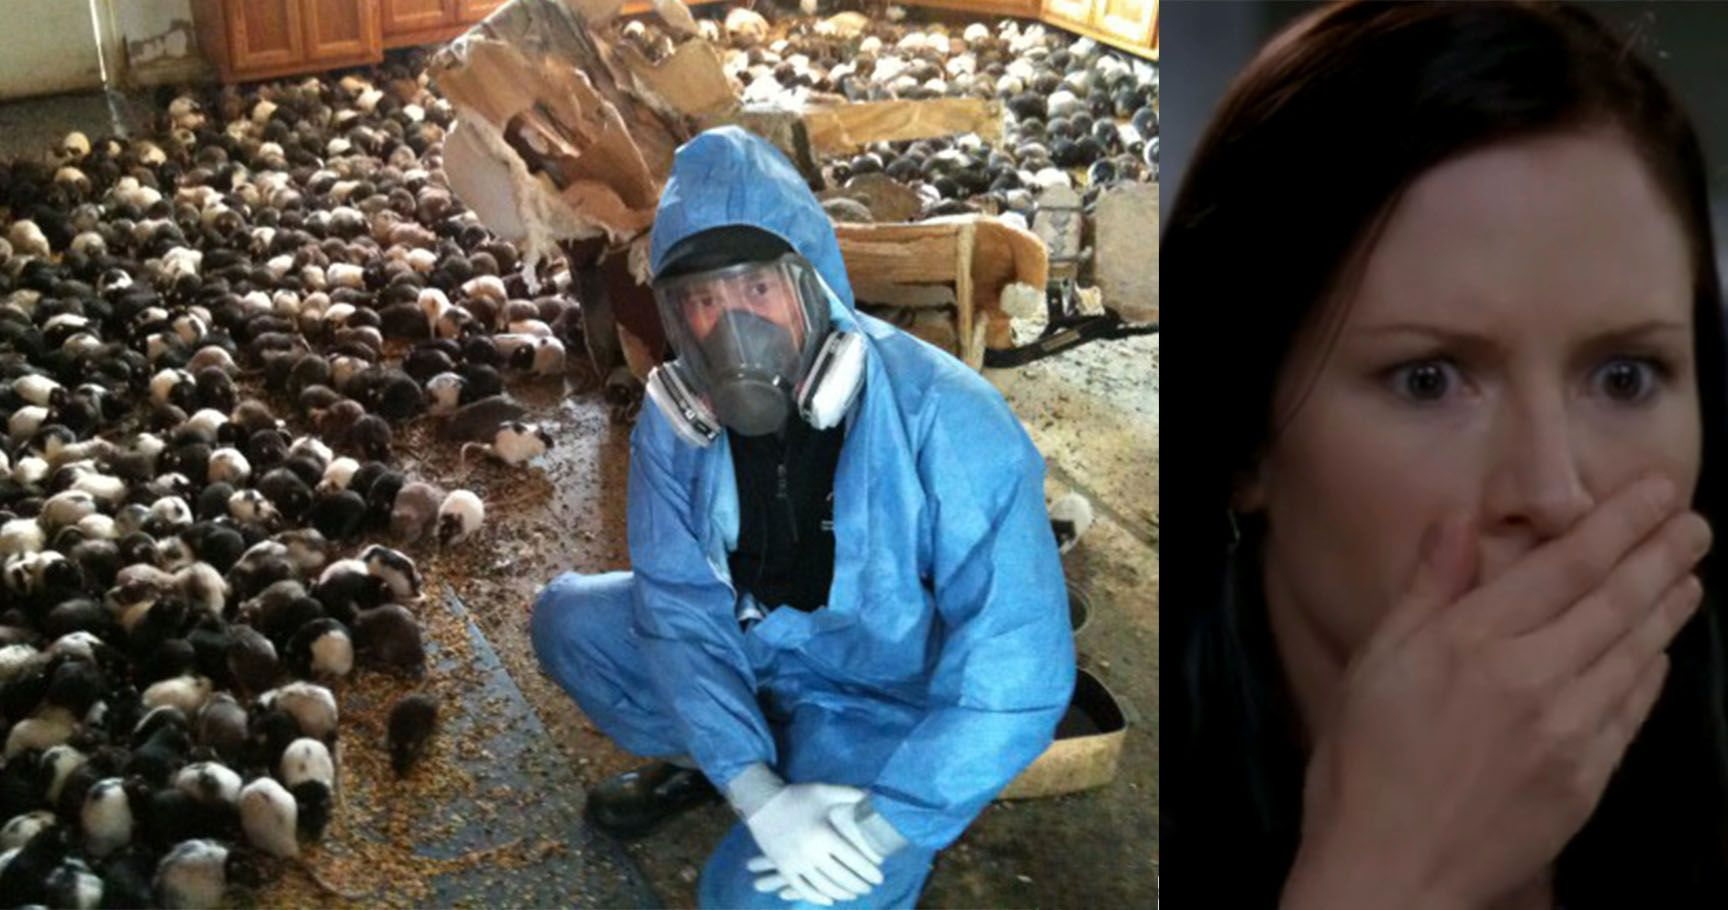 15 Hoarding Horror Stories That Made Our Skin Crawl